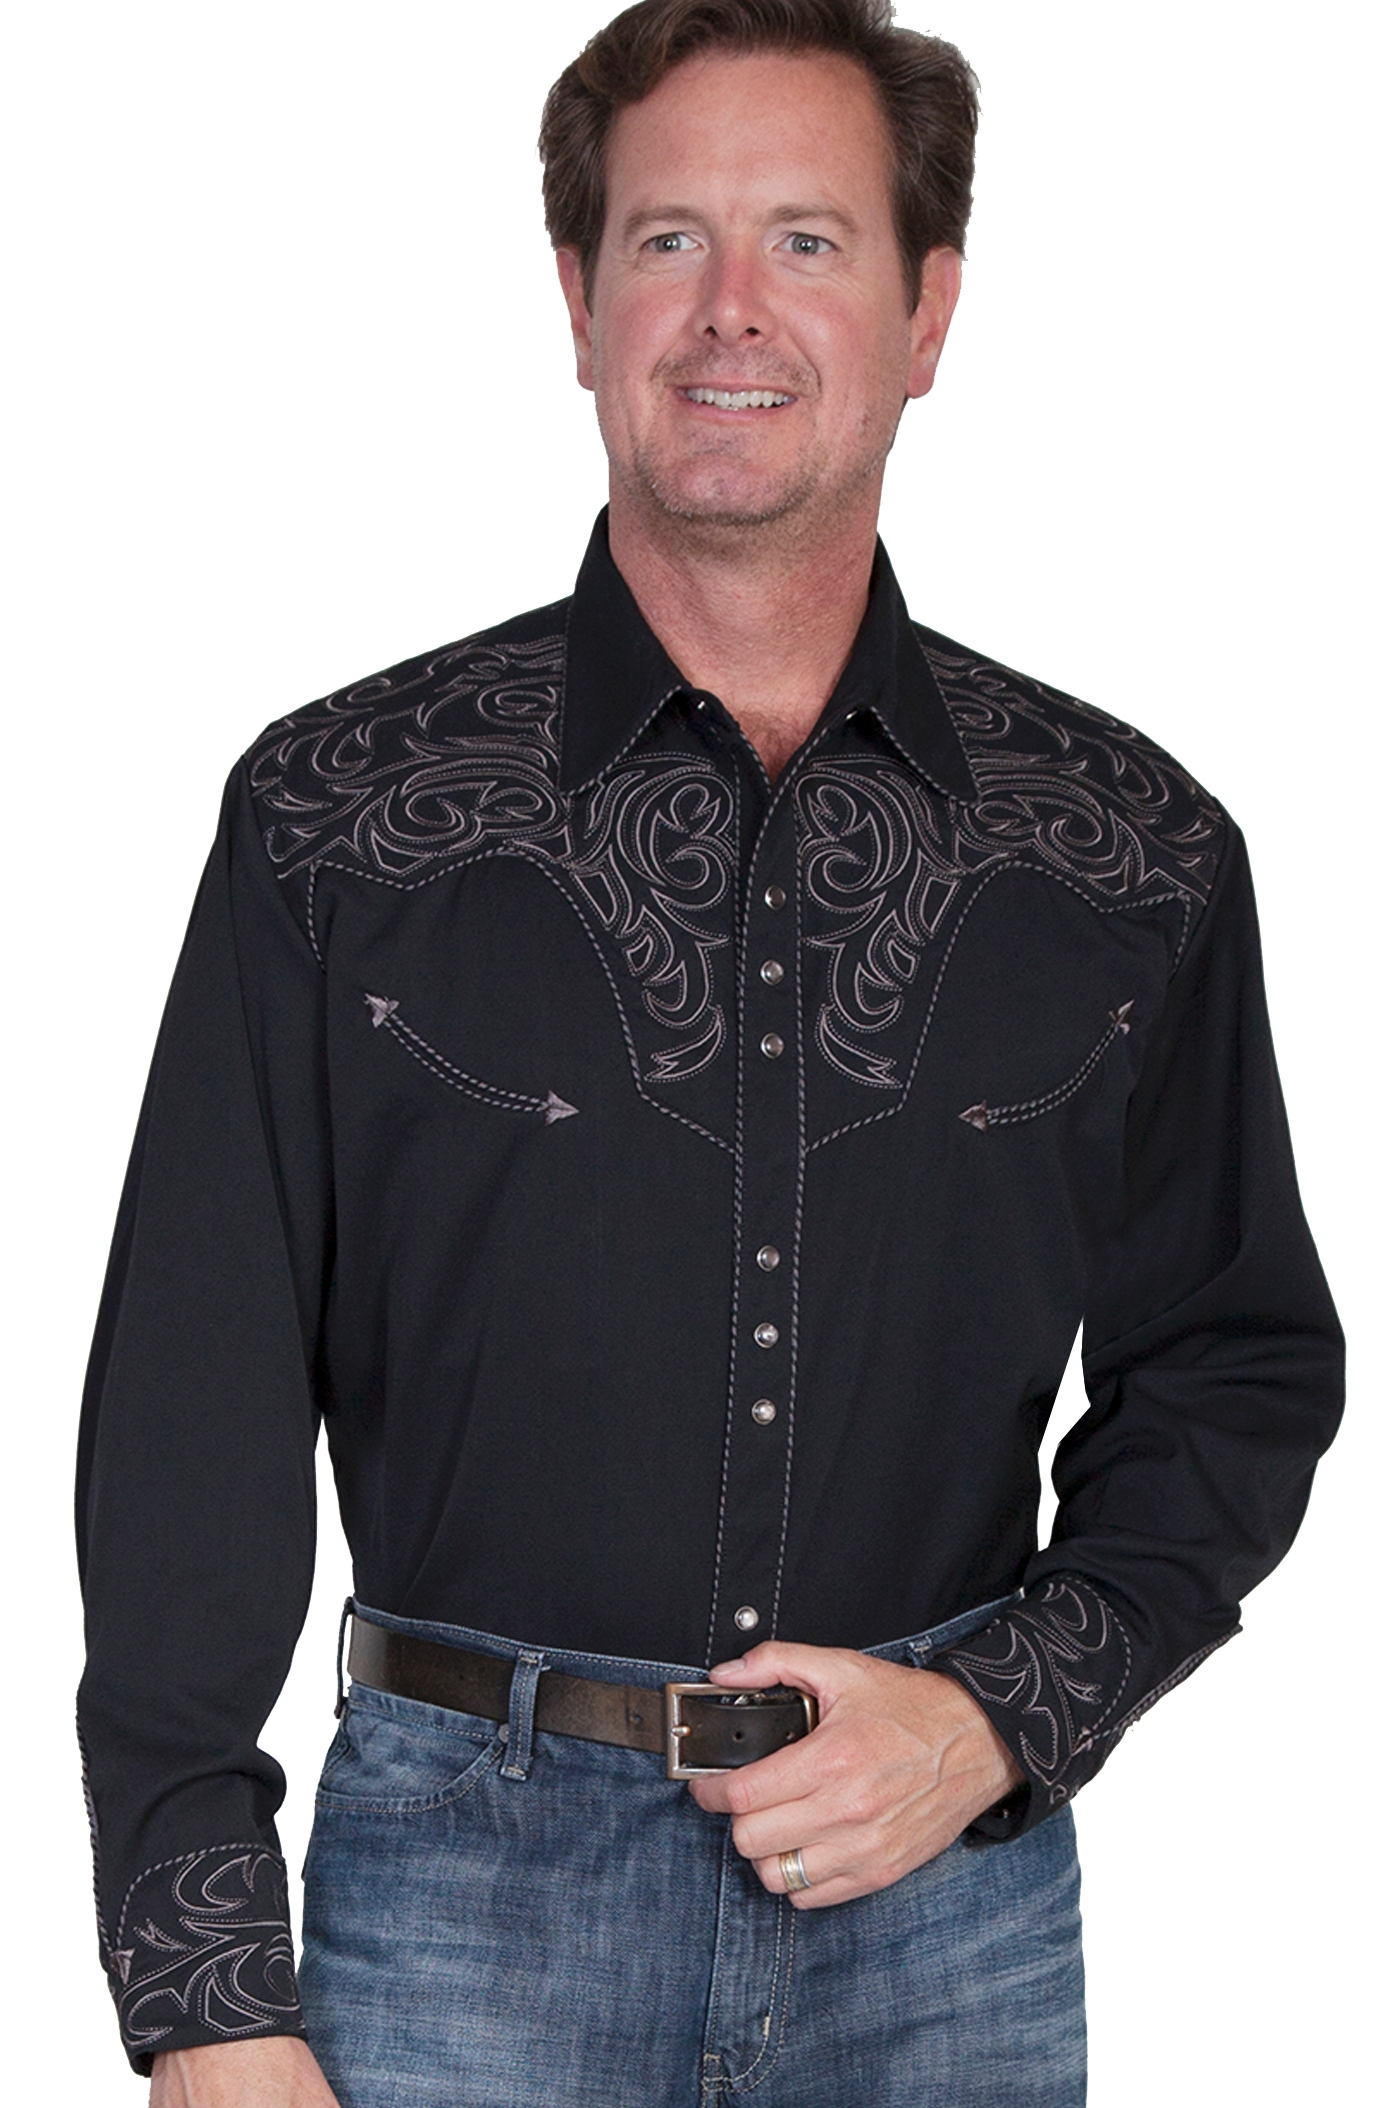 Mens Scully Turquoise Chocolate western Gunfighter shirt, mens scully western shirt, mens western shirt, cowboy shirt, western shirt for men, scully retro shirt, vintage shirt, retro shirt, scully